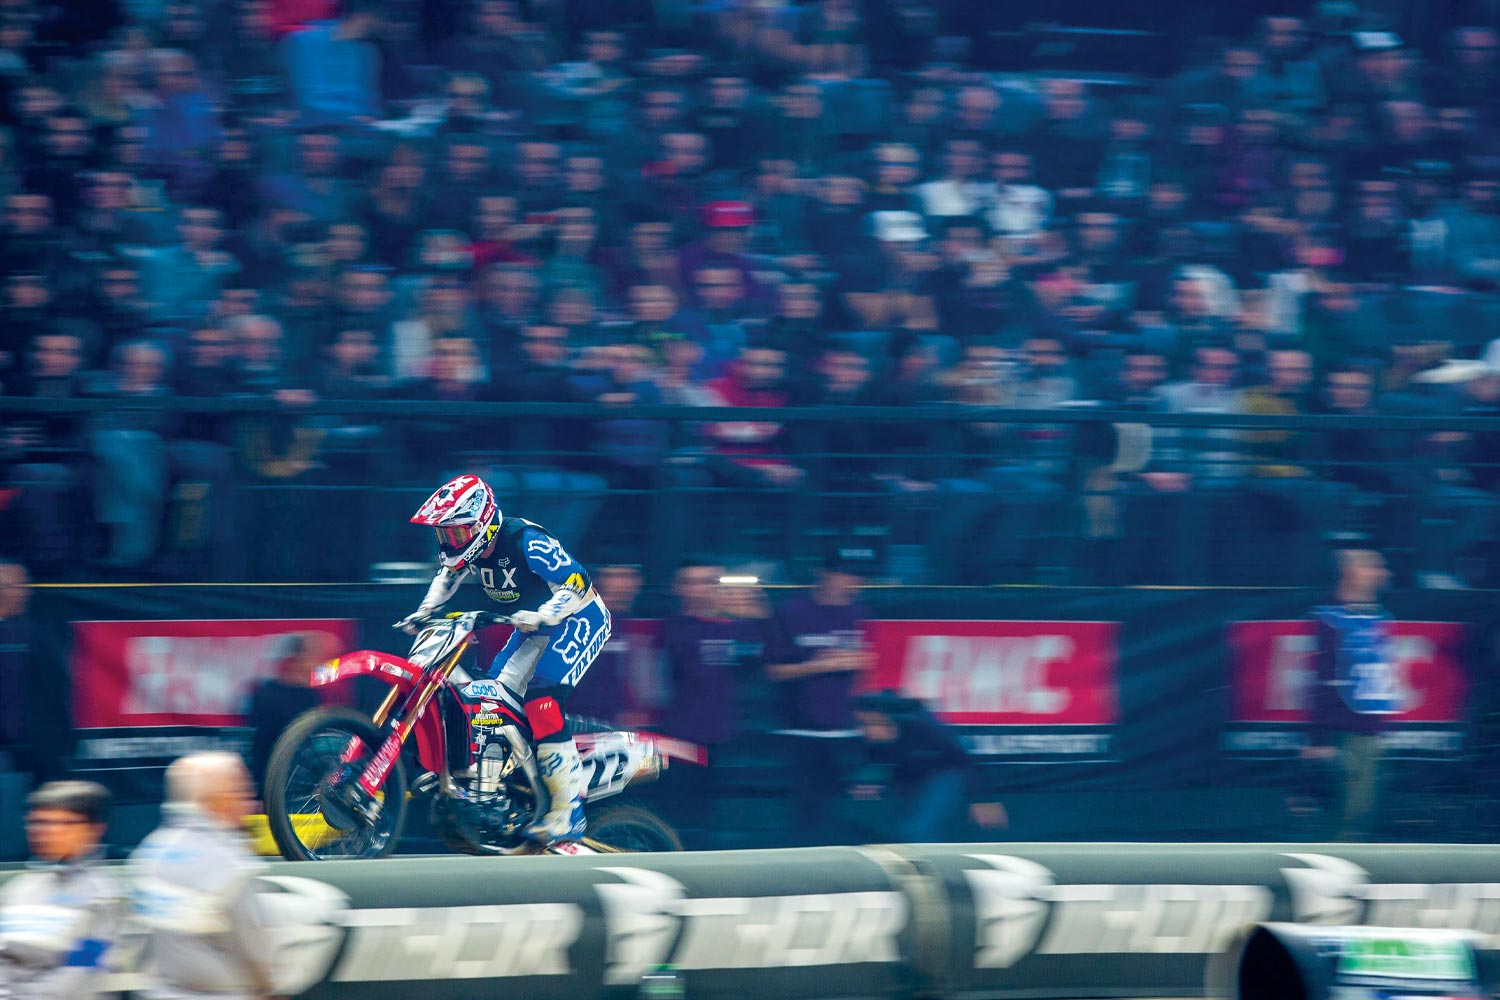 Chad Reed riding